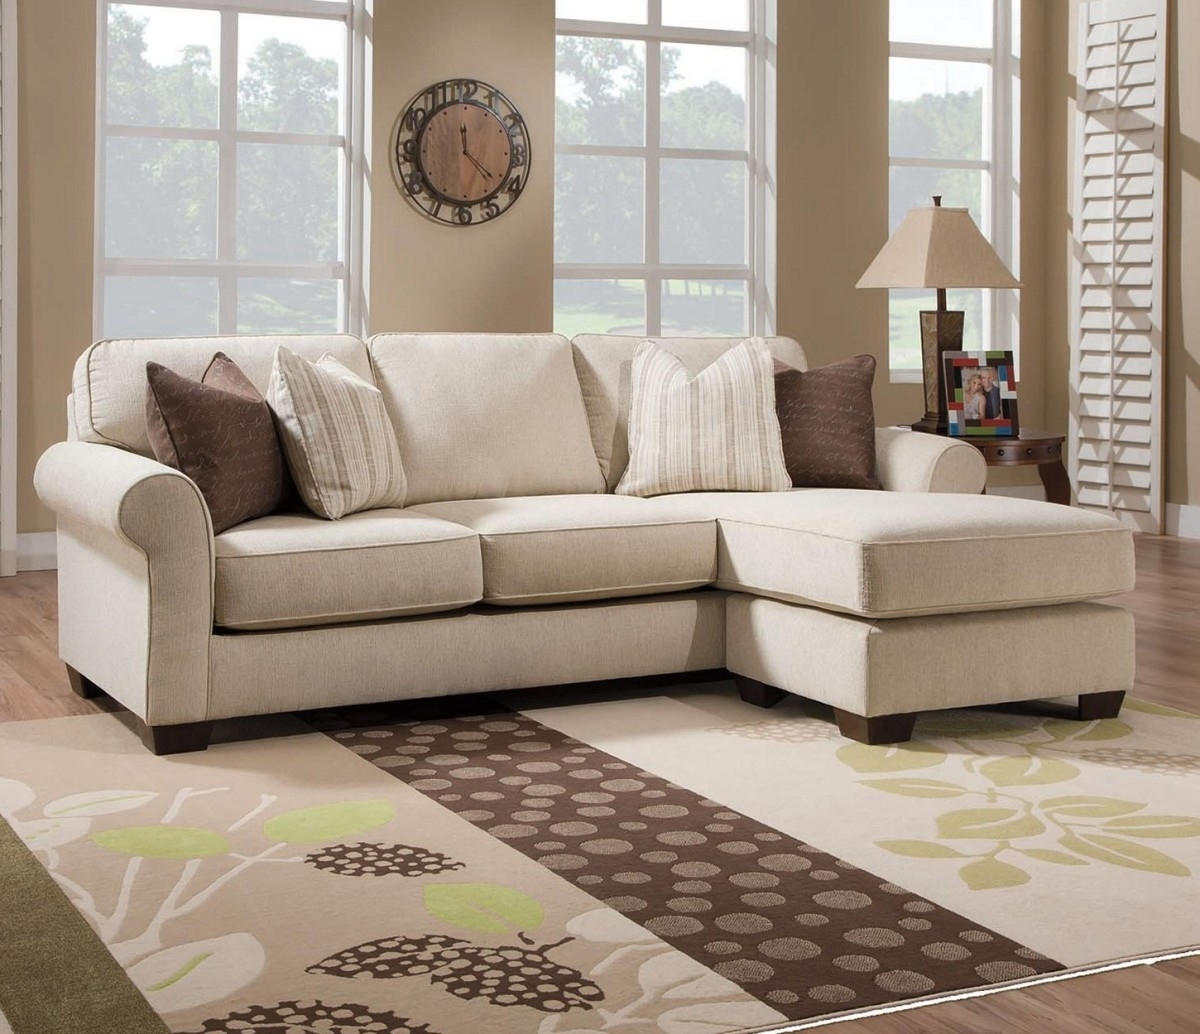 Loveseats For Small Spaces 10 Photos Canada Sectional Sofas For Small Spaces Sofa Ideas